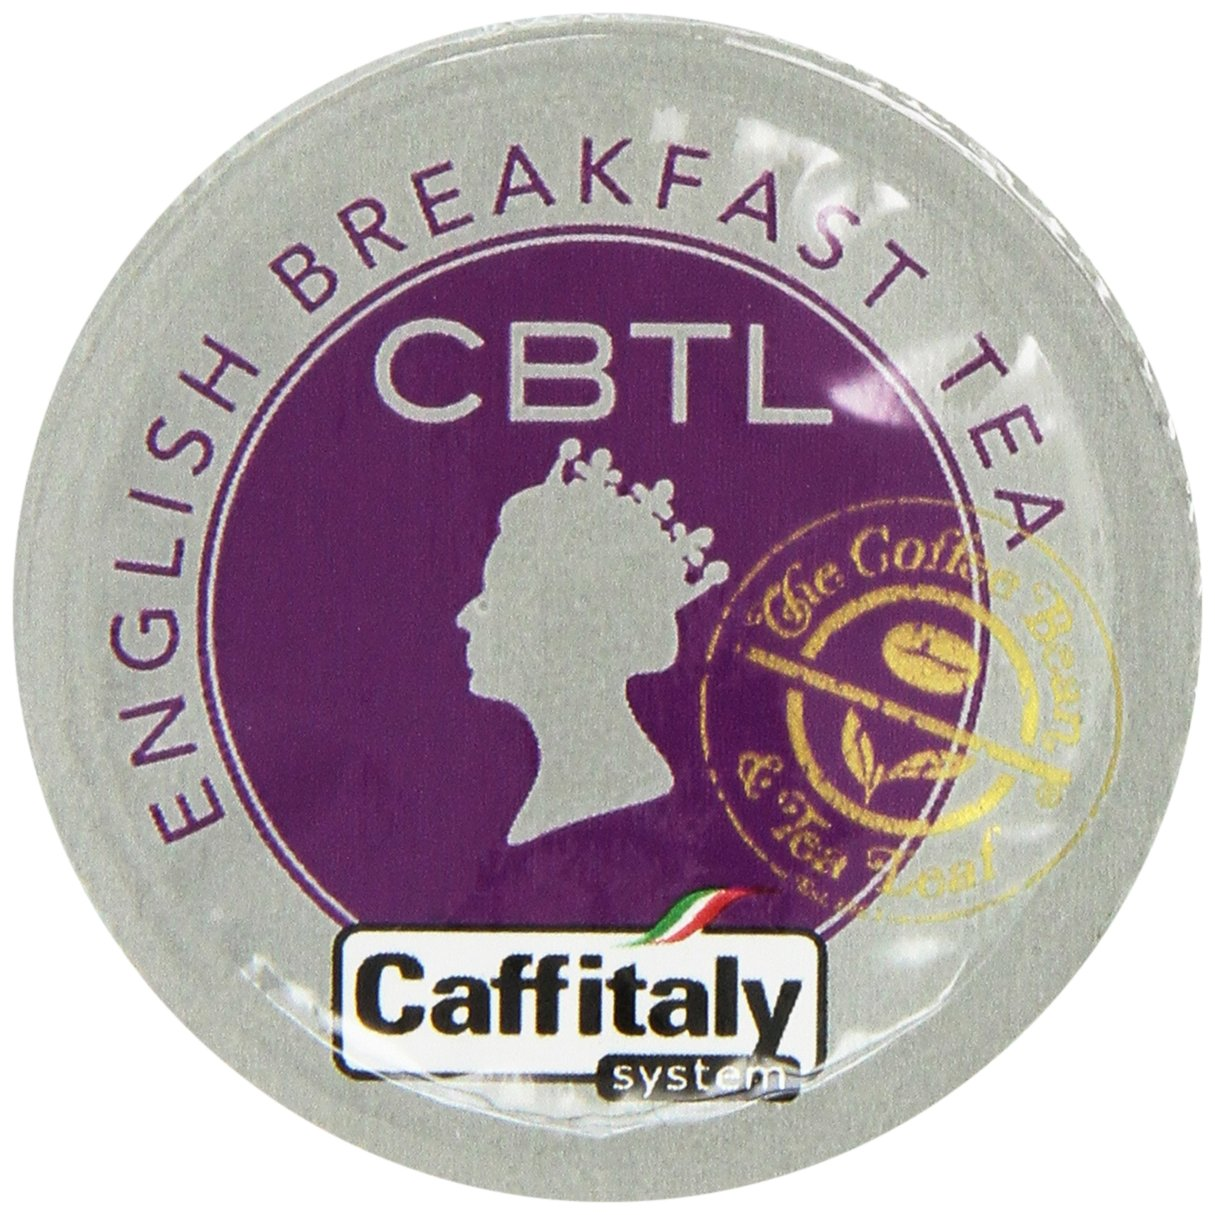 CBTL English Breakfast Tea Capsules By The Coffee Bean & Tea Leaf, Net Wt. 32.5g, 10 Count Box by Coffee Bean & Tea Leaf